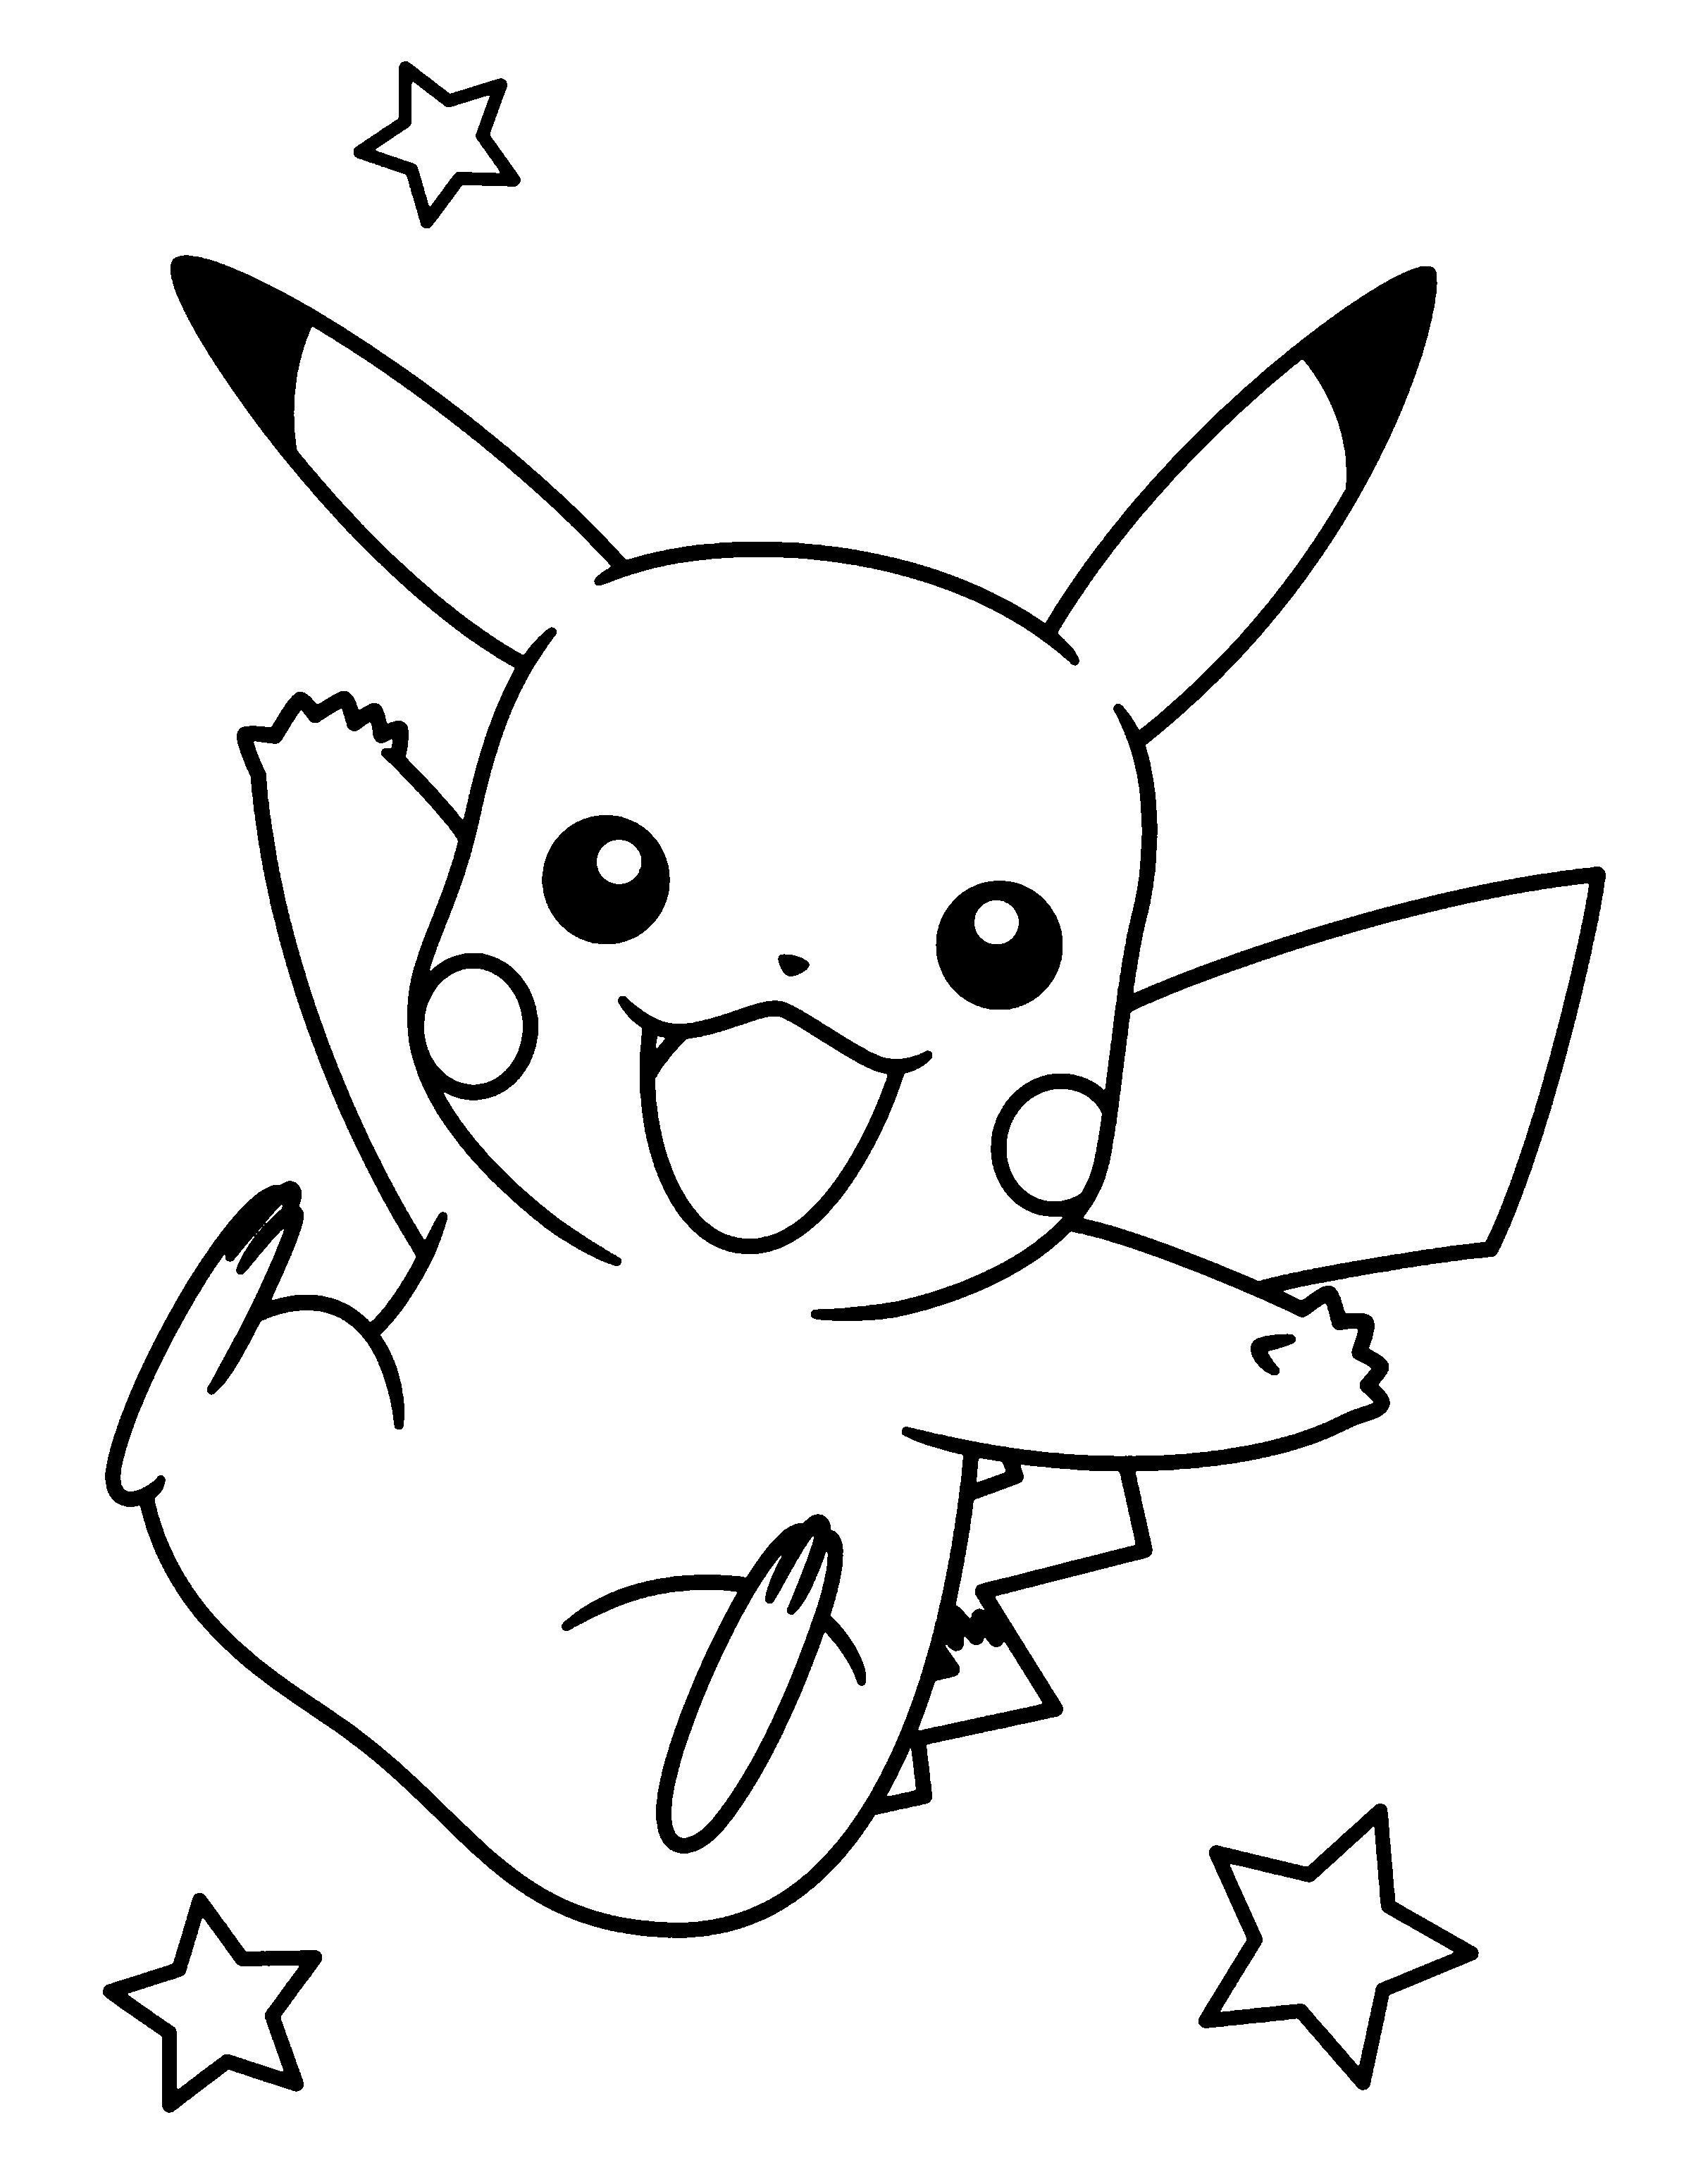 Pikachu Rockstar Coloring Pages Through The Thousands Of Photos On The Net In Relation To Pikachu Coloring Page Pokemon Coloring Pages Cartoon Coloring Pages